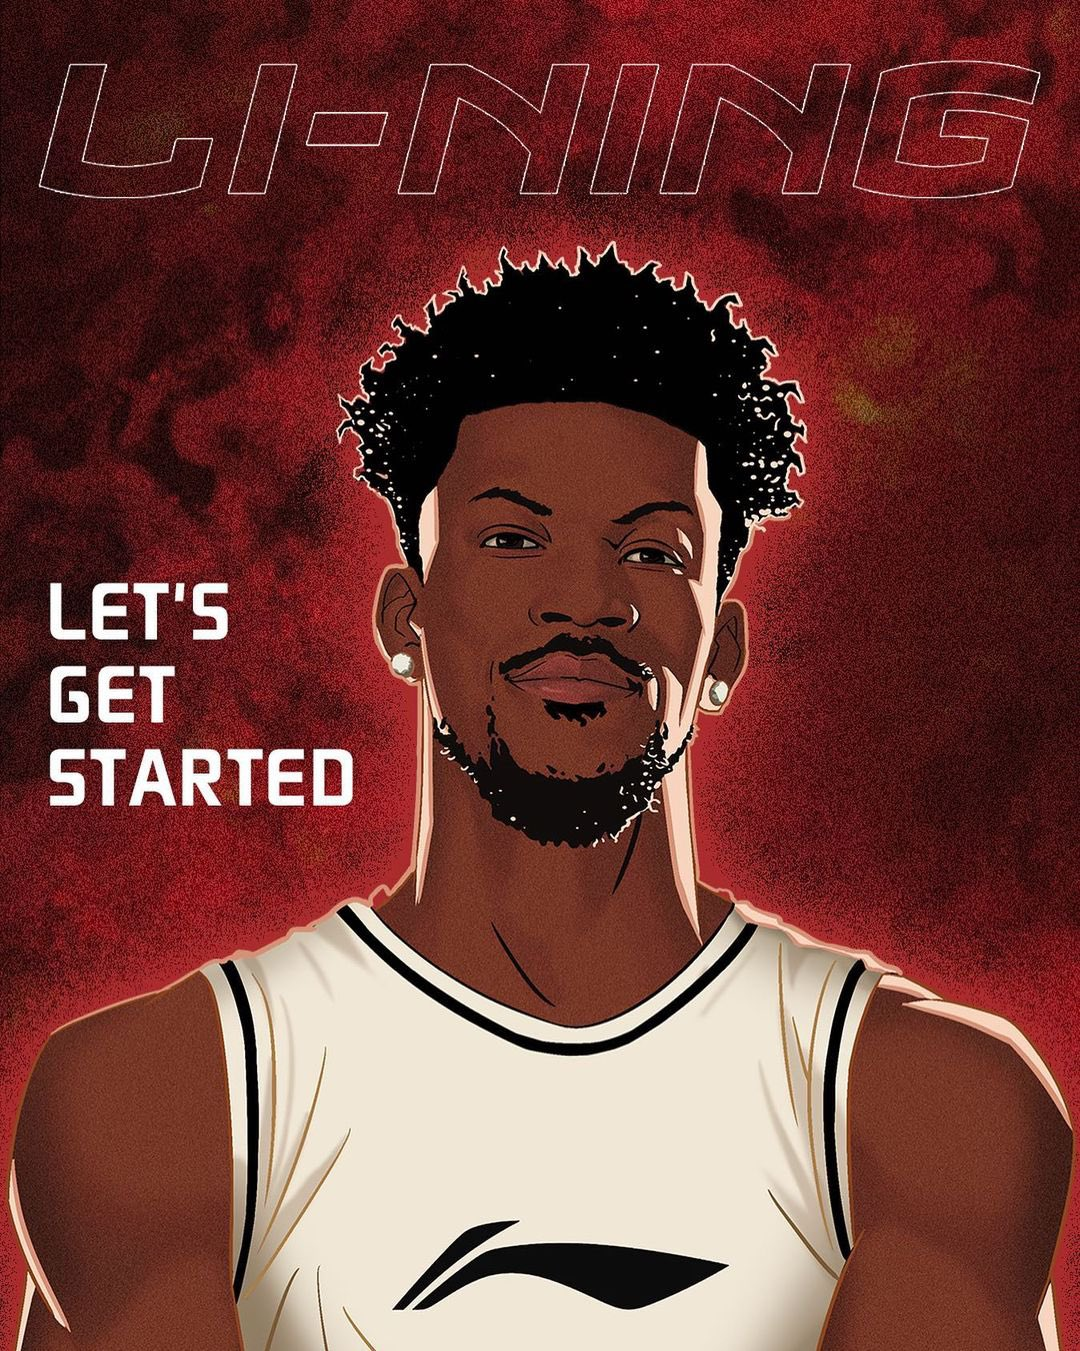 SOURCE SPORTS: Jimmy Butler Signs with Li-Ning, Set to Receive Signature Shoe